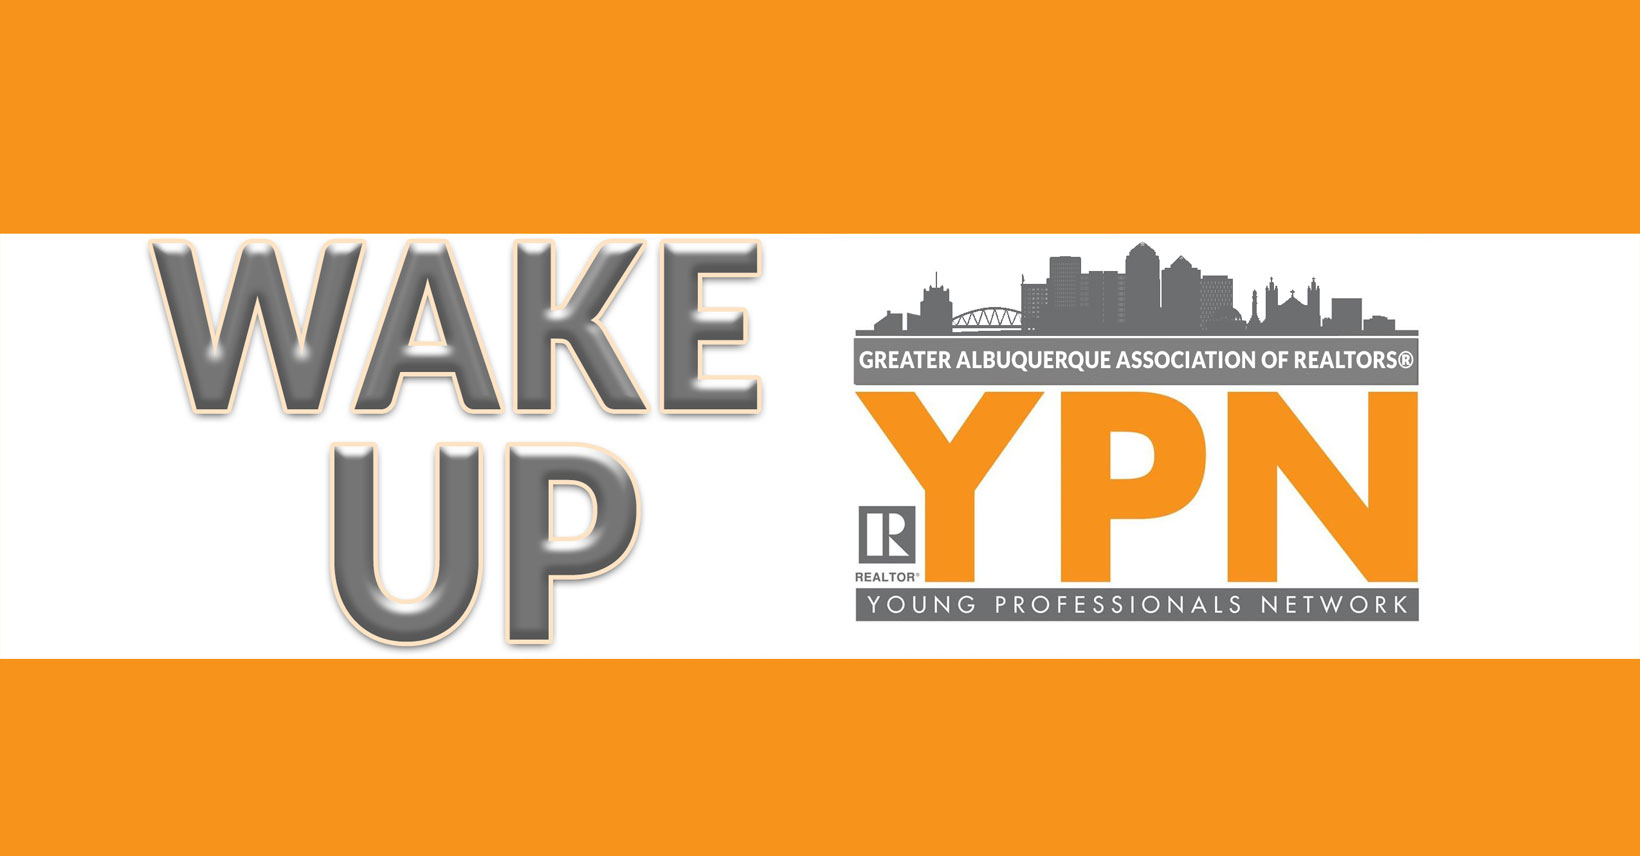 Wake Up with YPN on Friday, November 15th